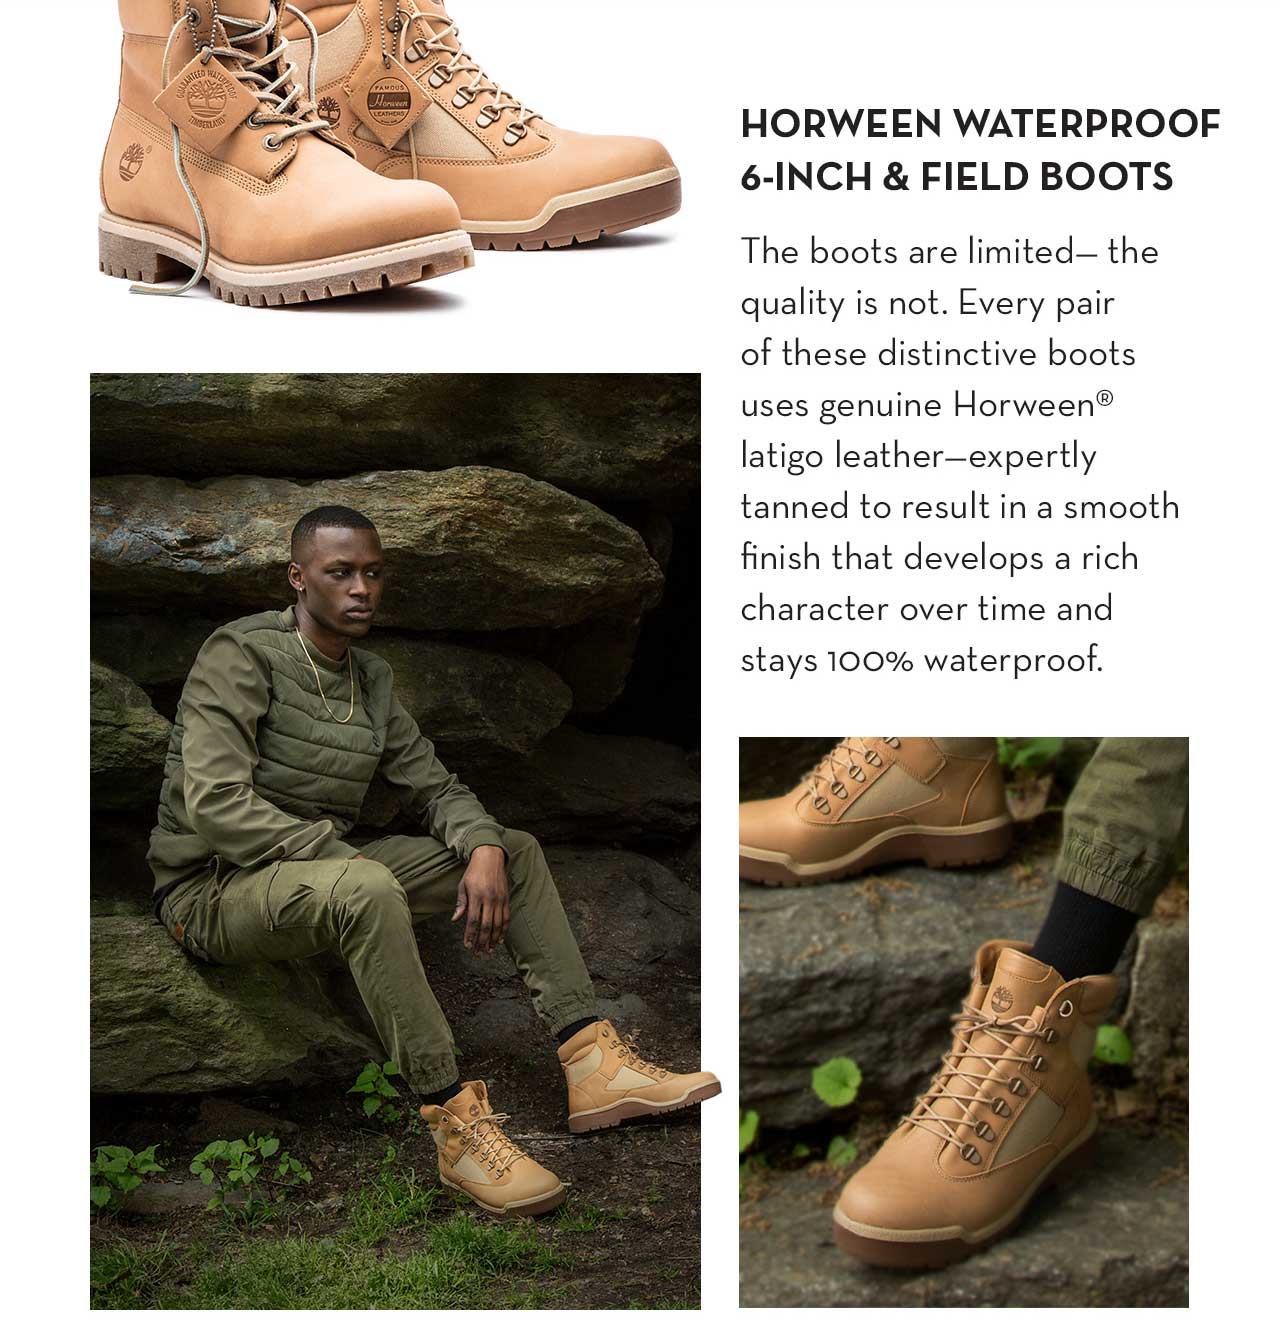 Horween Waterproof 6-Inch & Field Boots The boots are limited - the quality is not. Every pair of these distinctive boots uses genuine Horween® latigo leather - expertly tanned to result in a smooth finish that develops a rich character over time and stays 100% waterproof.